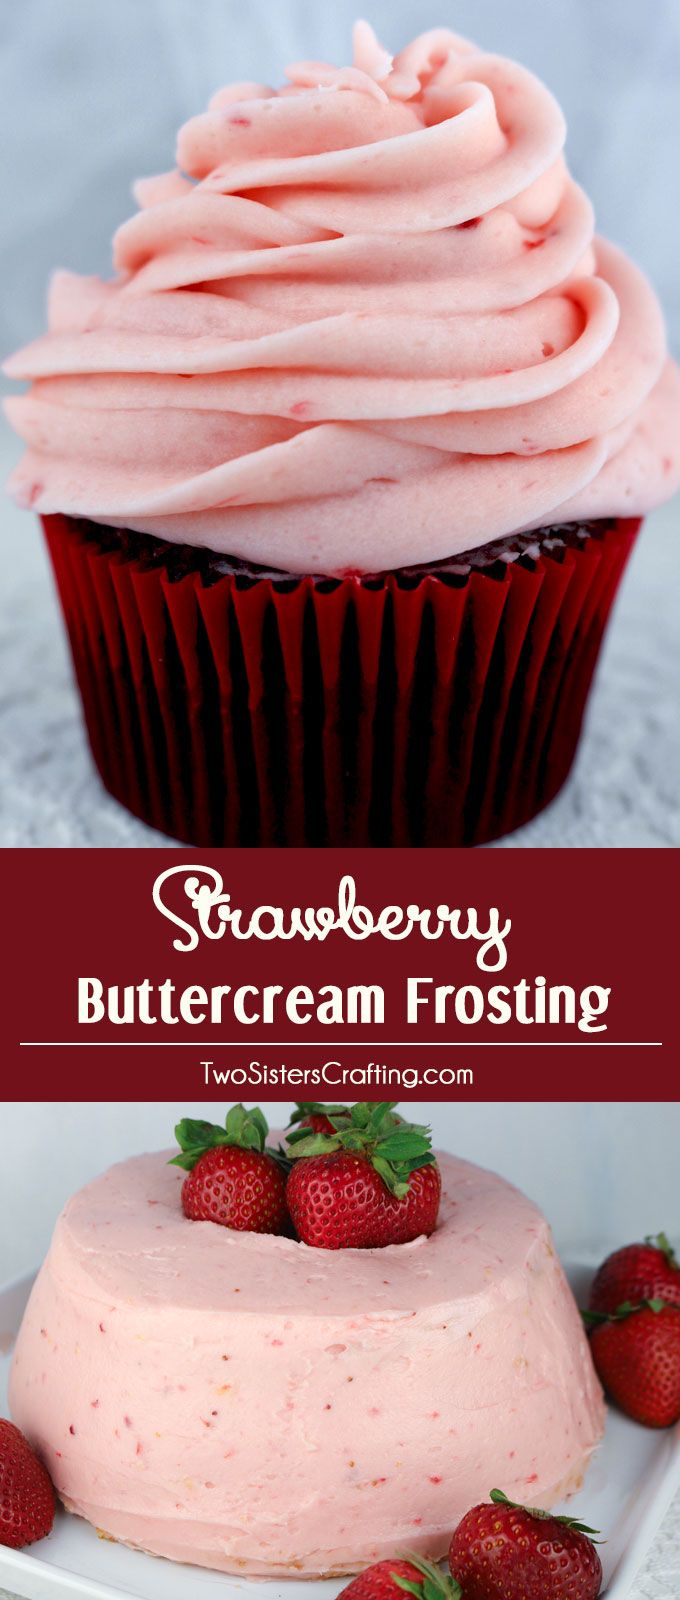 The Best Strawberry Buttercream Frosting Recipe Cupcake Recipes Frosting Recipes Desserts